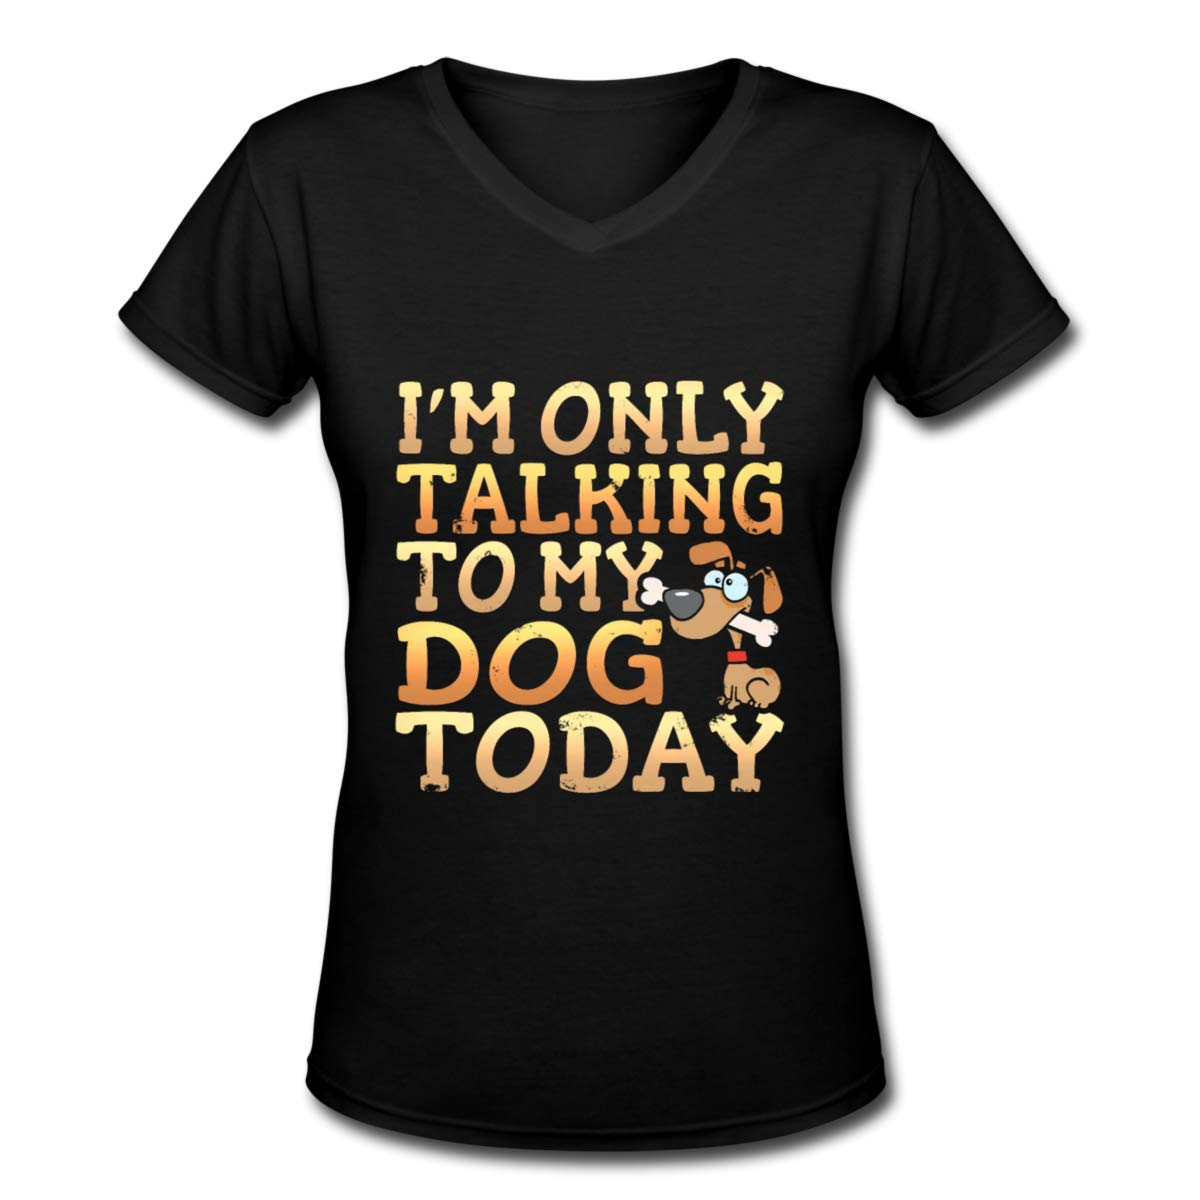 Im Only Talking to My Dog Today V-Neck T-Shirt Short Sleeve Women